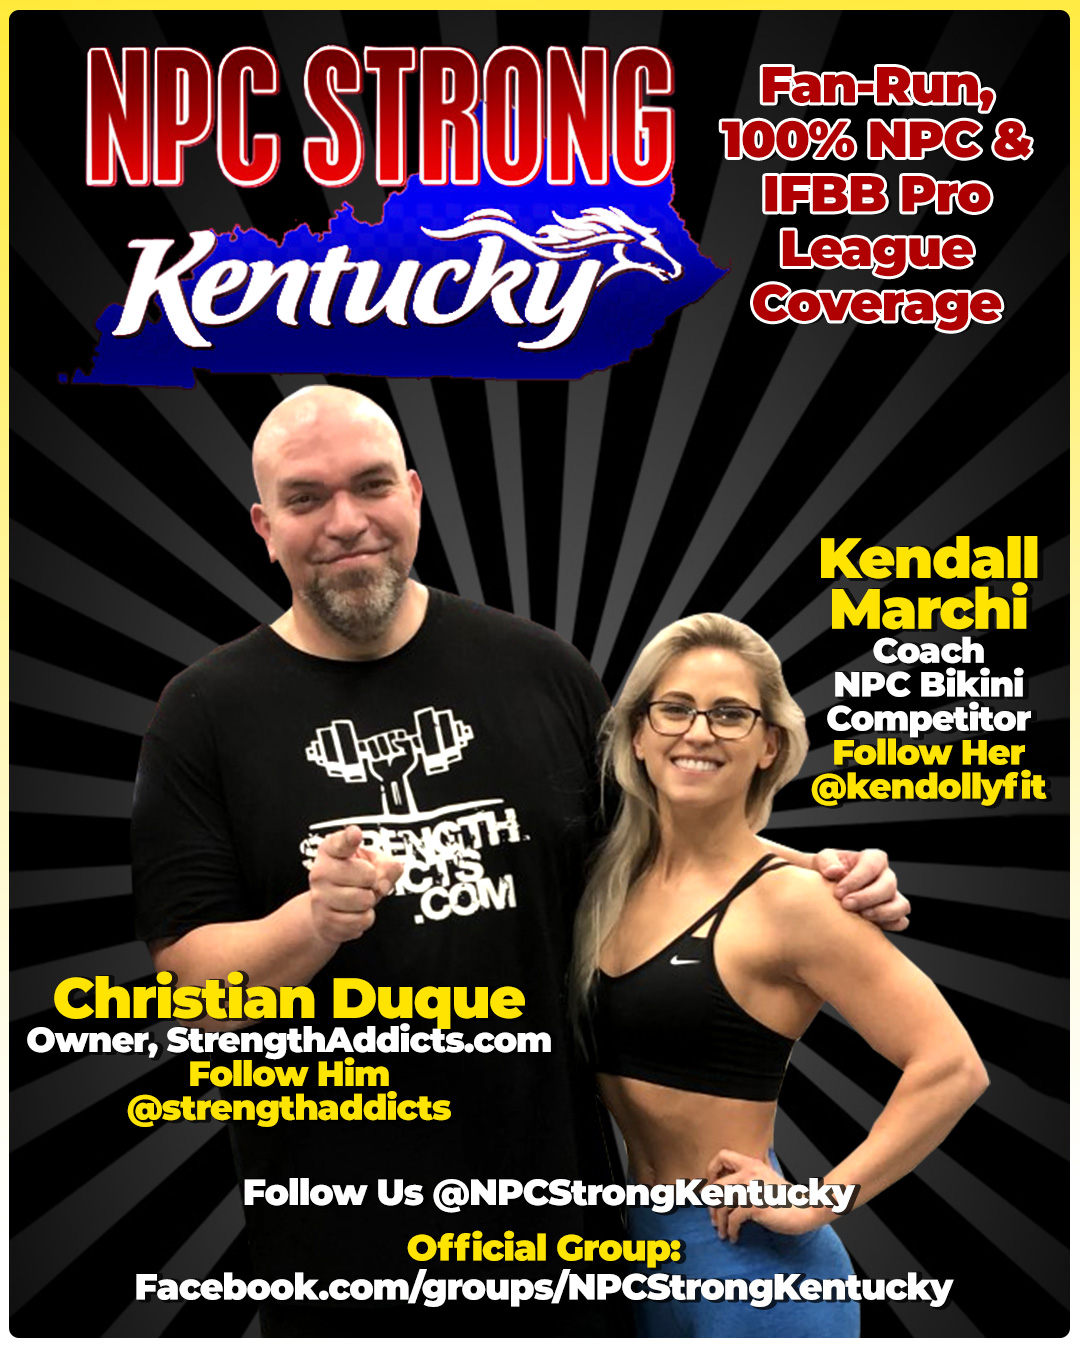 Official NPCStrongKentucky Group